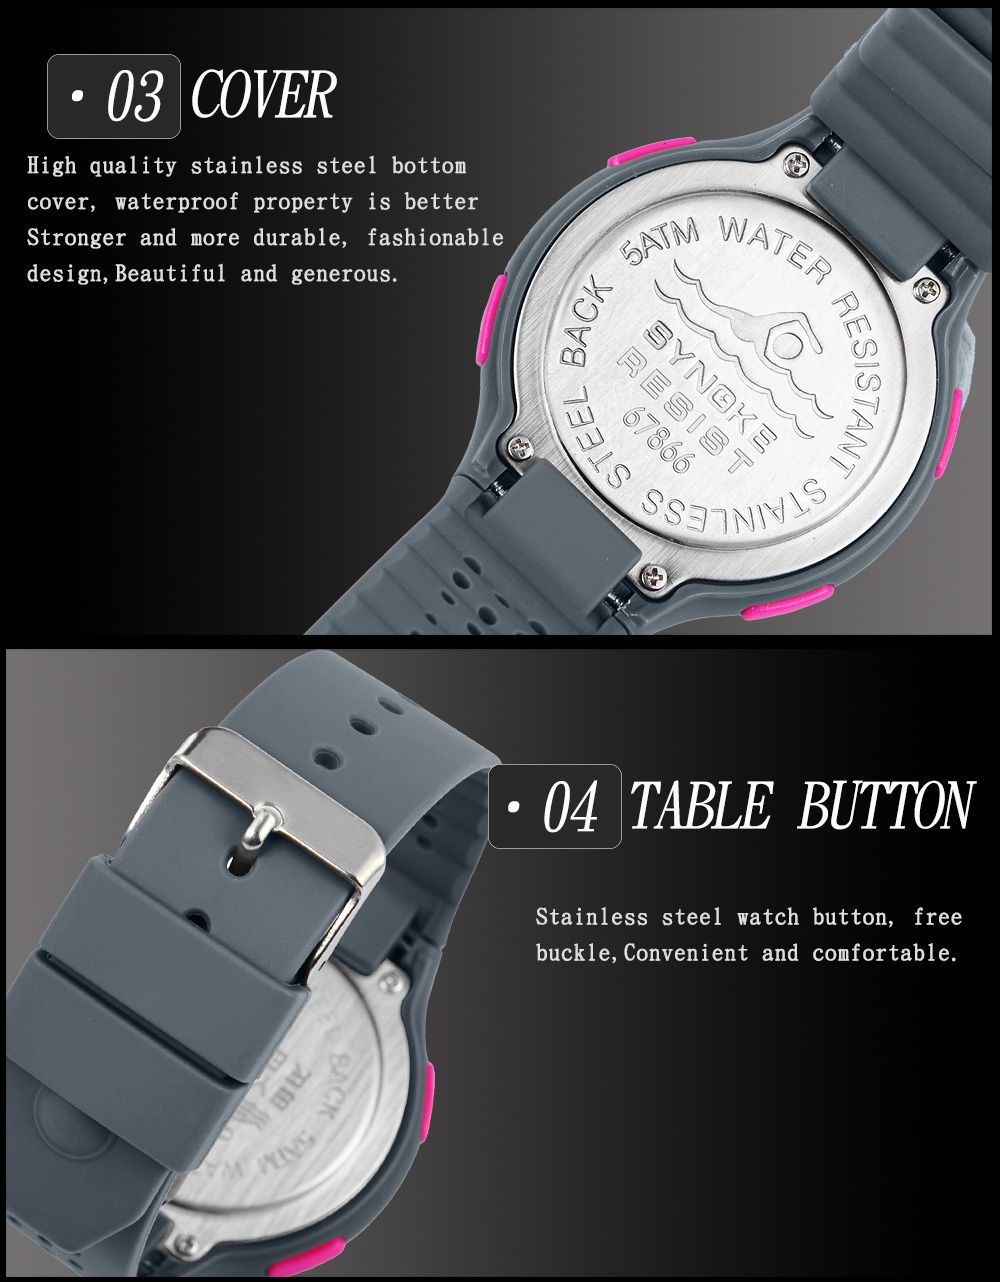 SYNOKE 67866 Slim Trendy Waterproof Unisex Electronic Watch